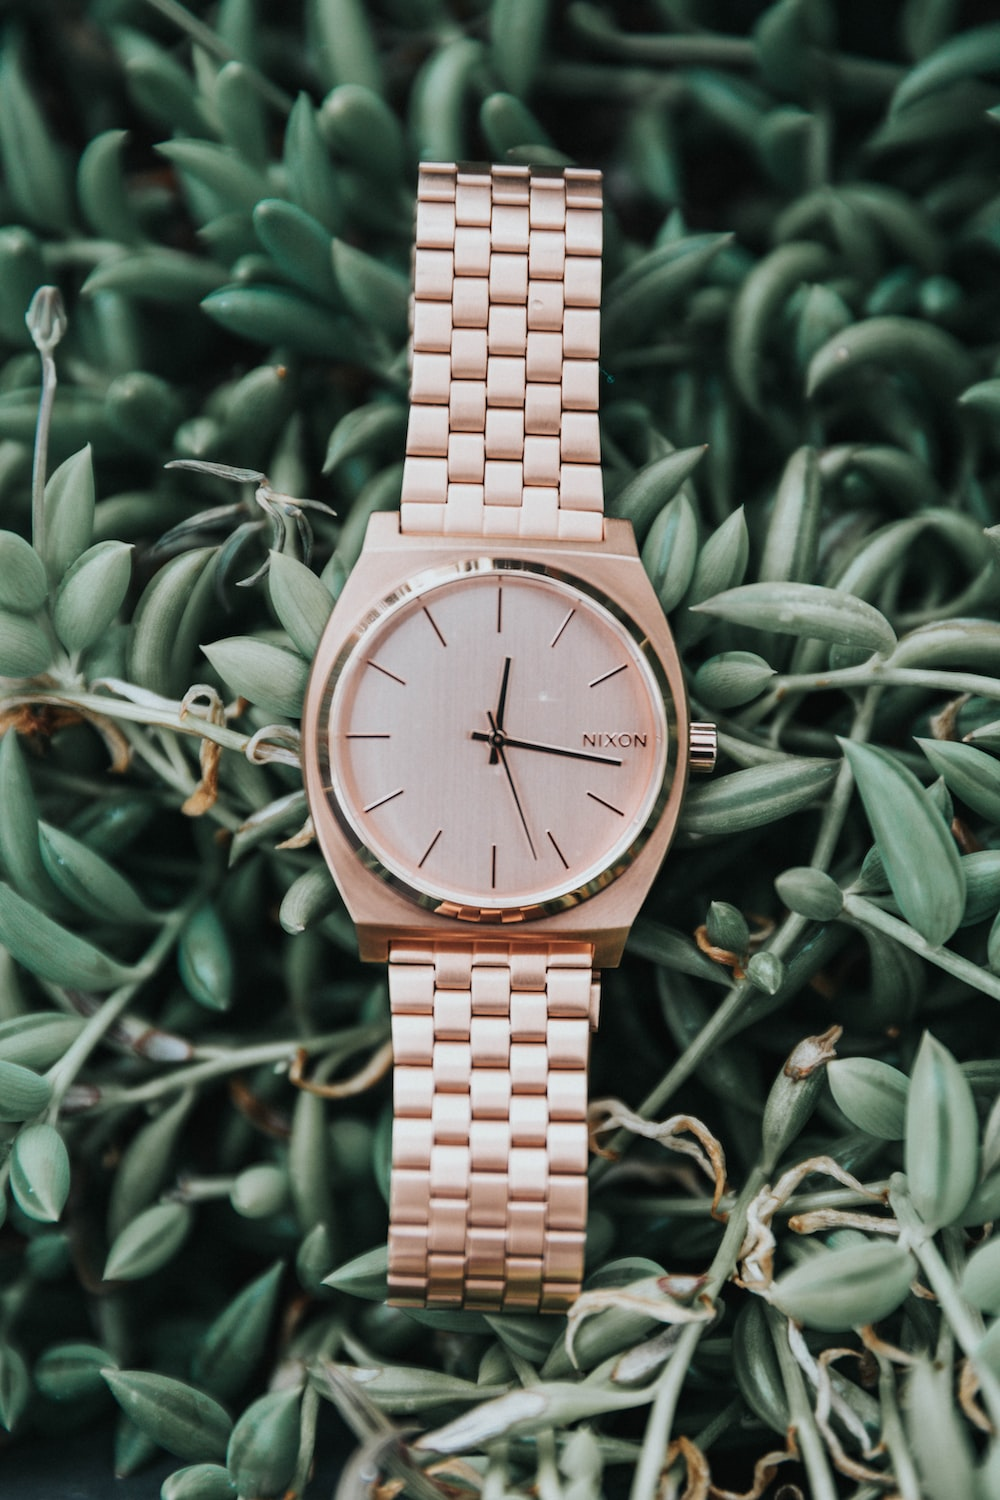 round gold-colored Nixon analog watch with link bracelet